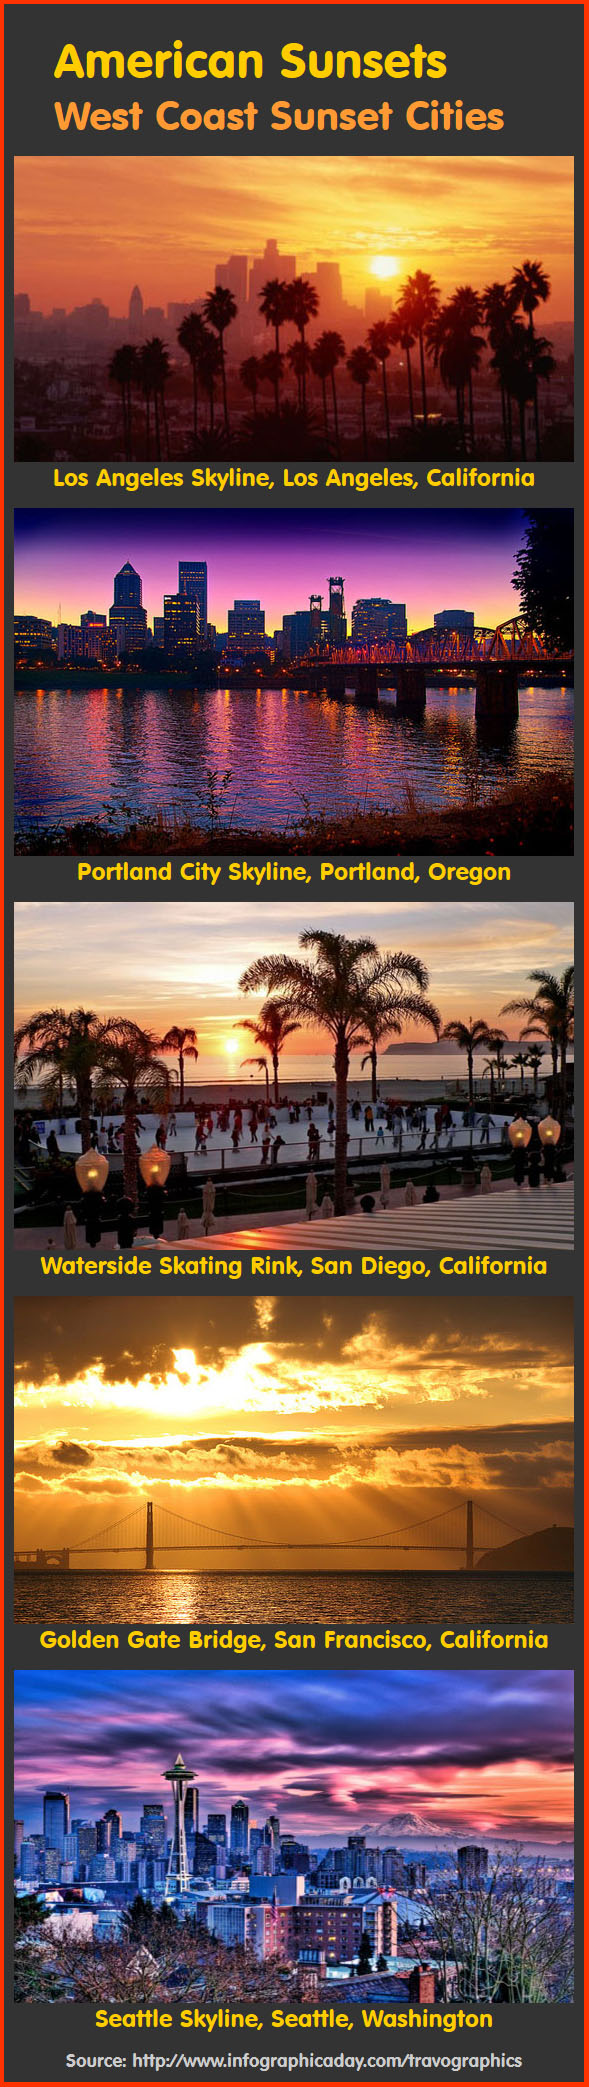 American Sunsets - West Coast Sunset Cities